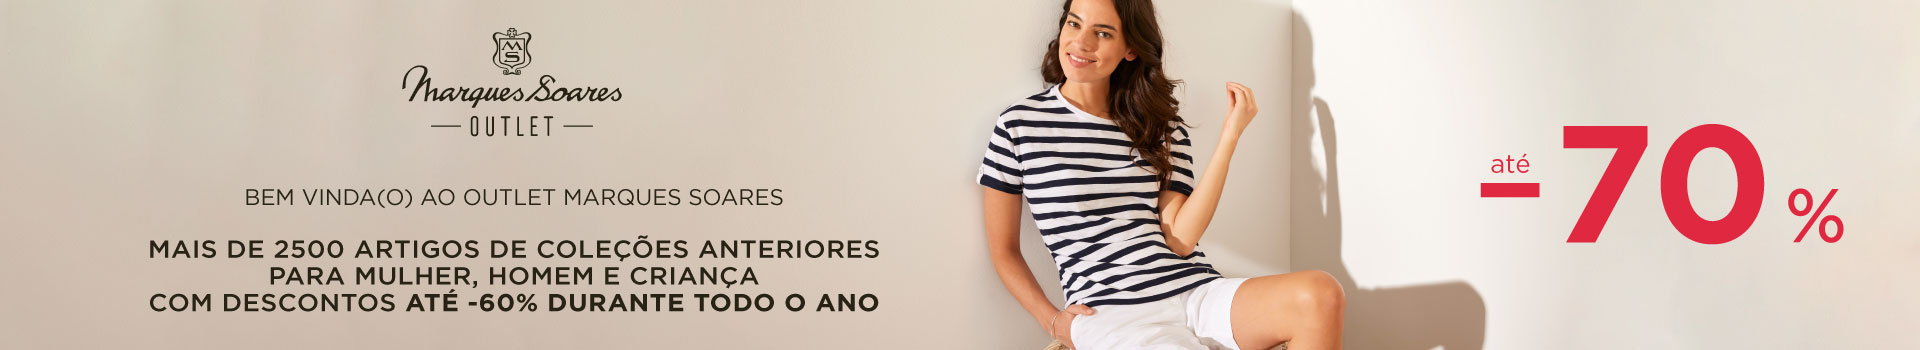 Outlet Marques Soares outono inverno